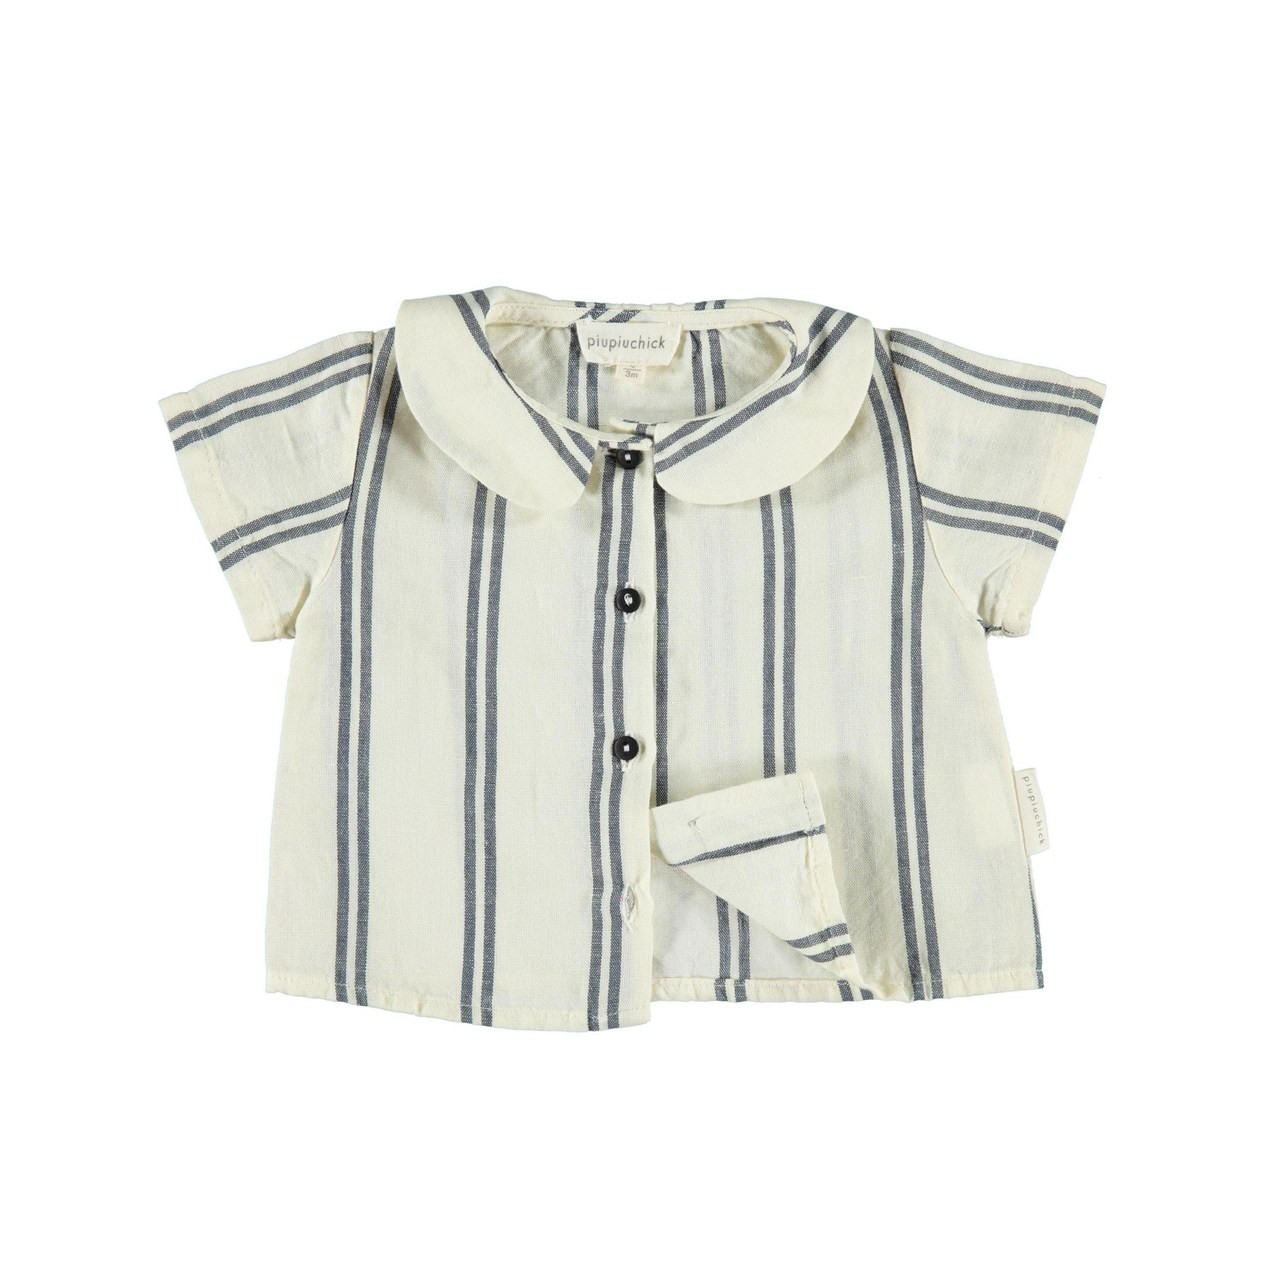 Peter Pan Collar Blouse Navy Stripe Spearmint Ventures Llc